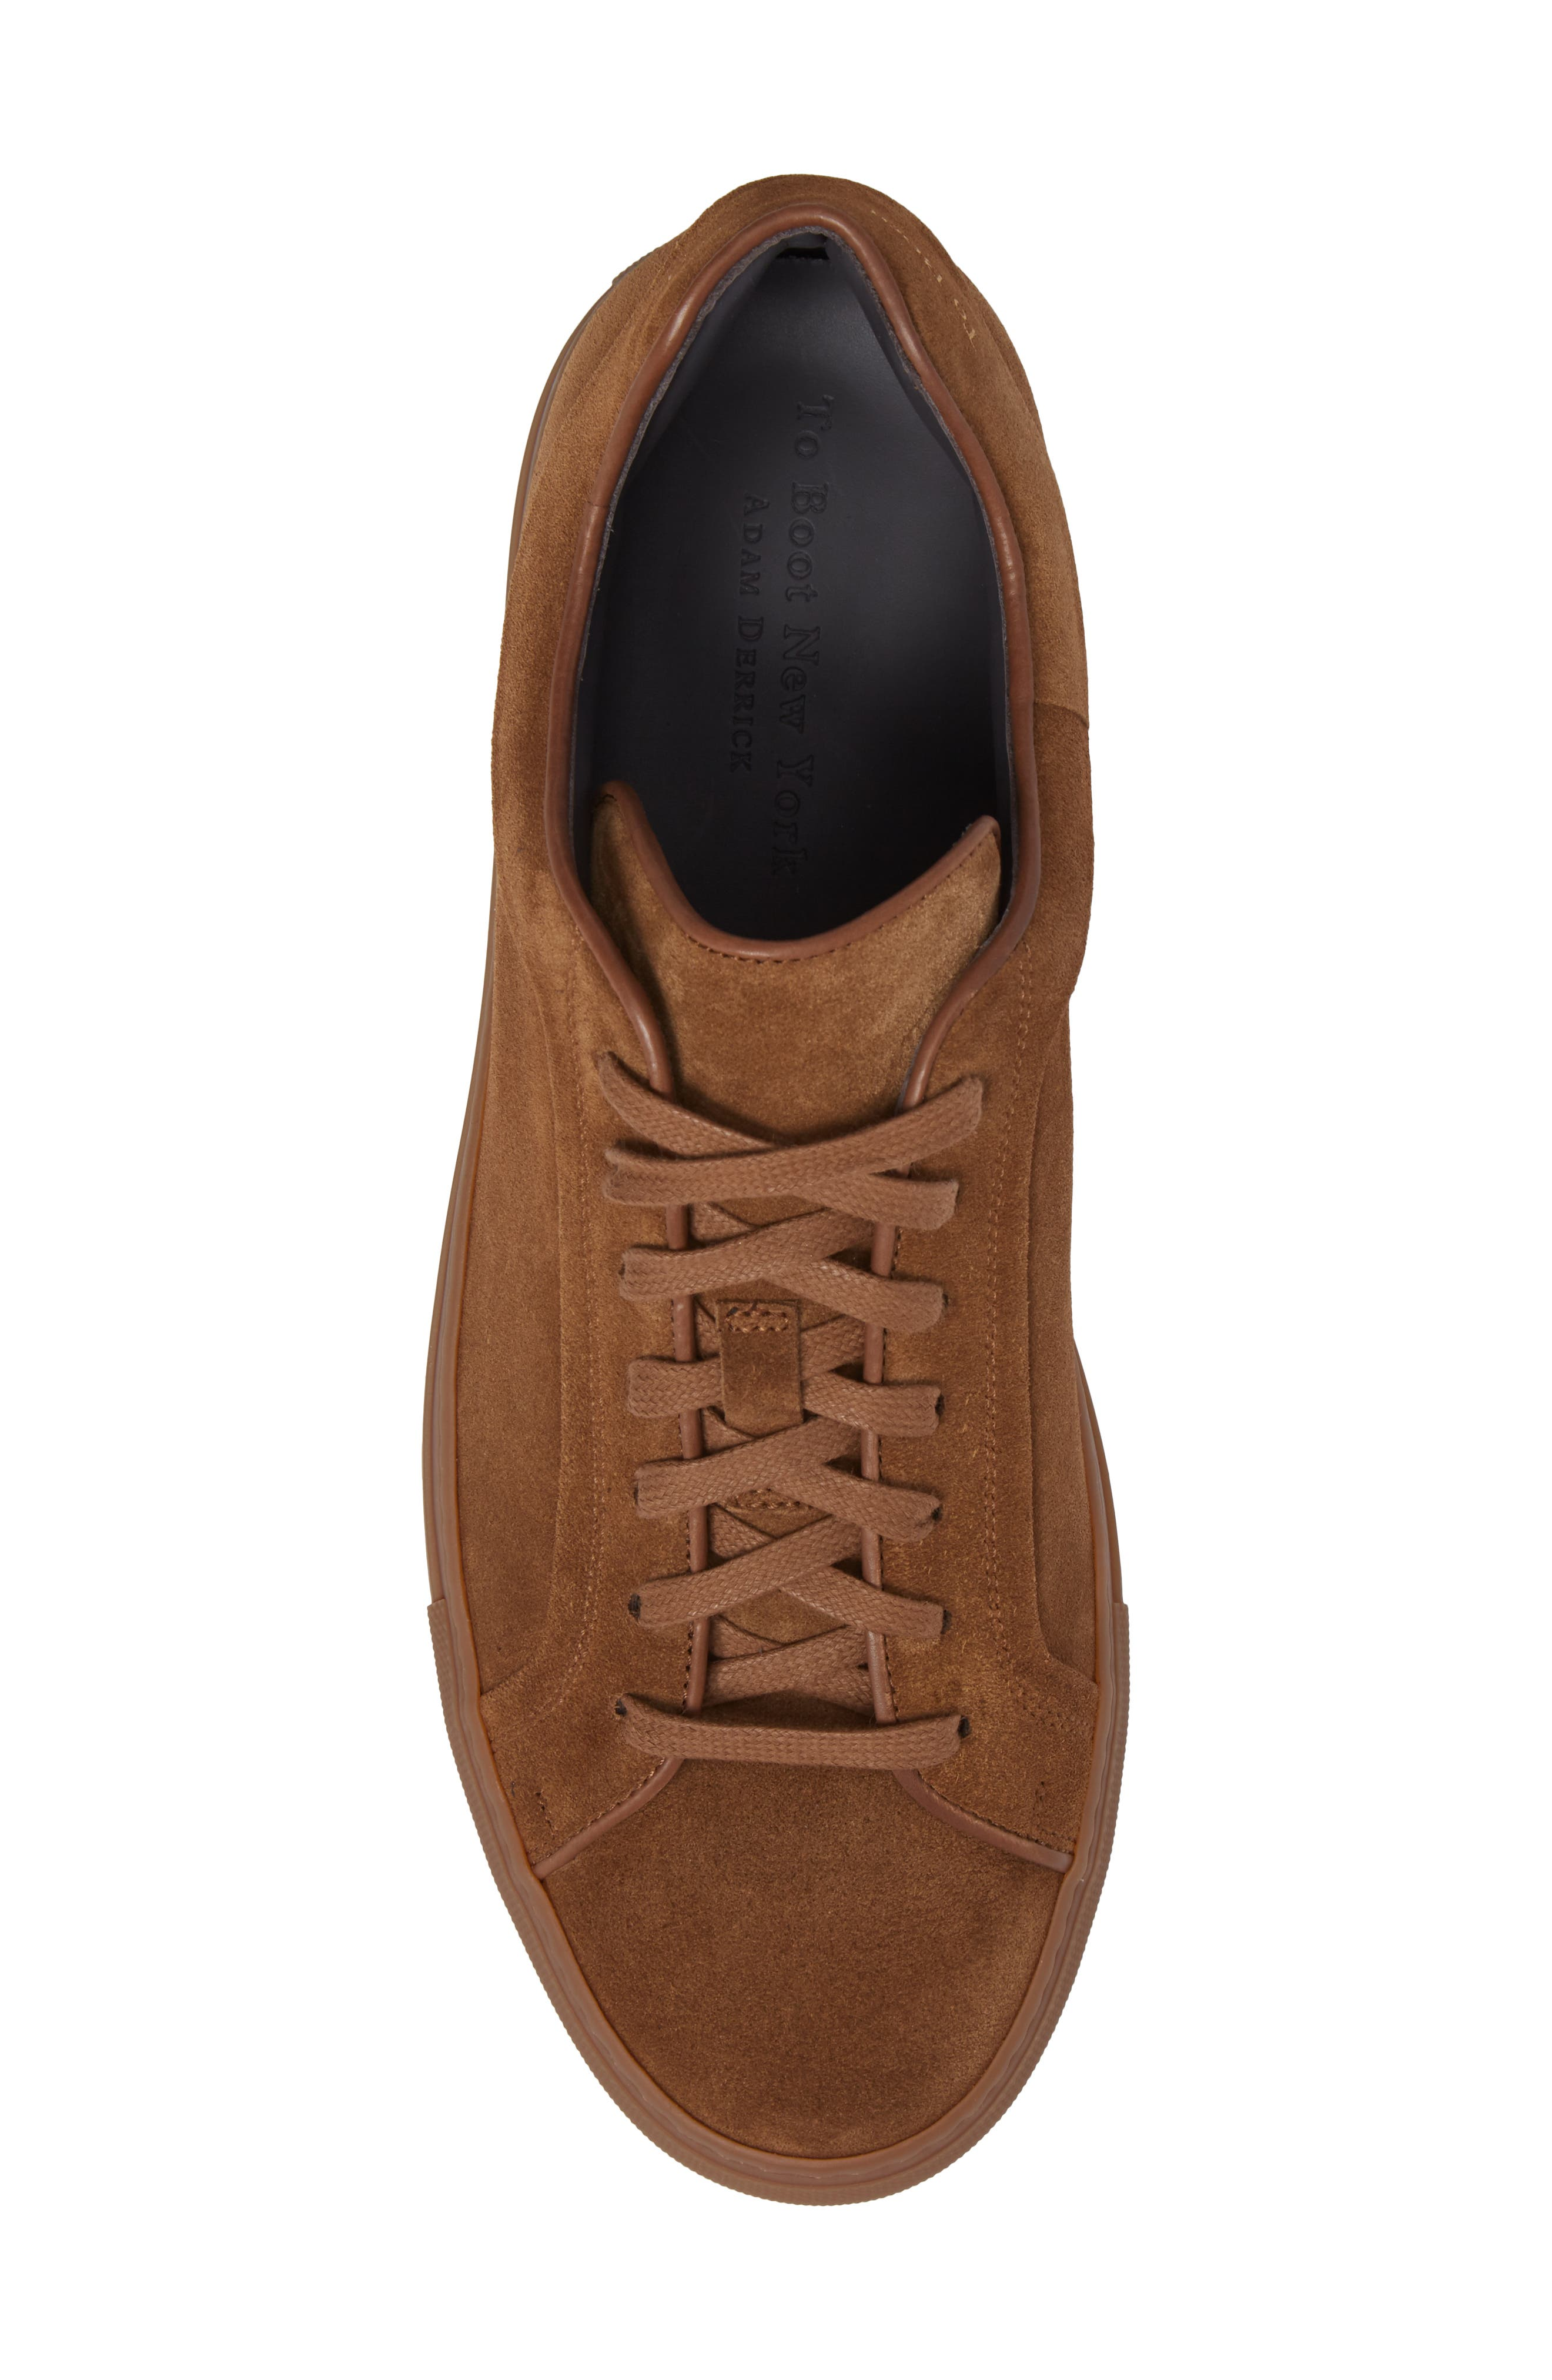 Marshall Sneaker,                             Alternate thumbnail 5, color,                             Brown Suede Leather